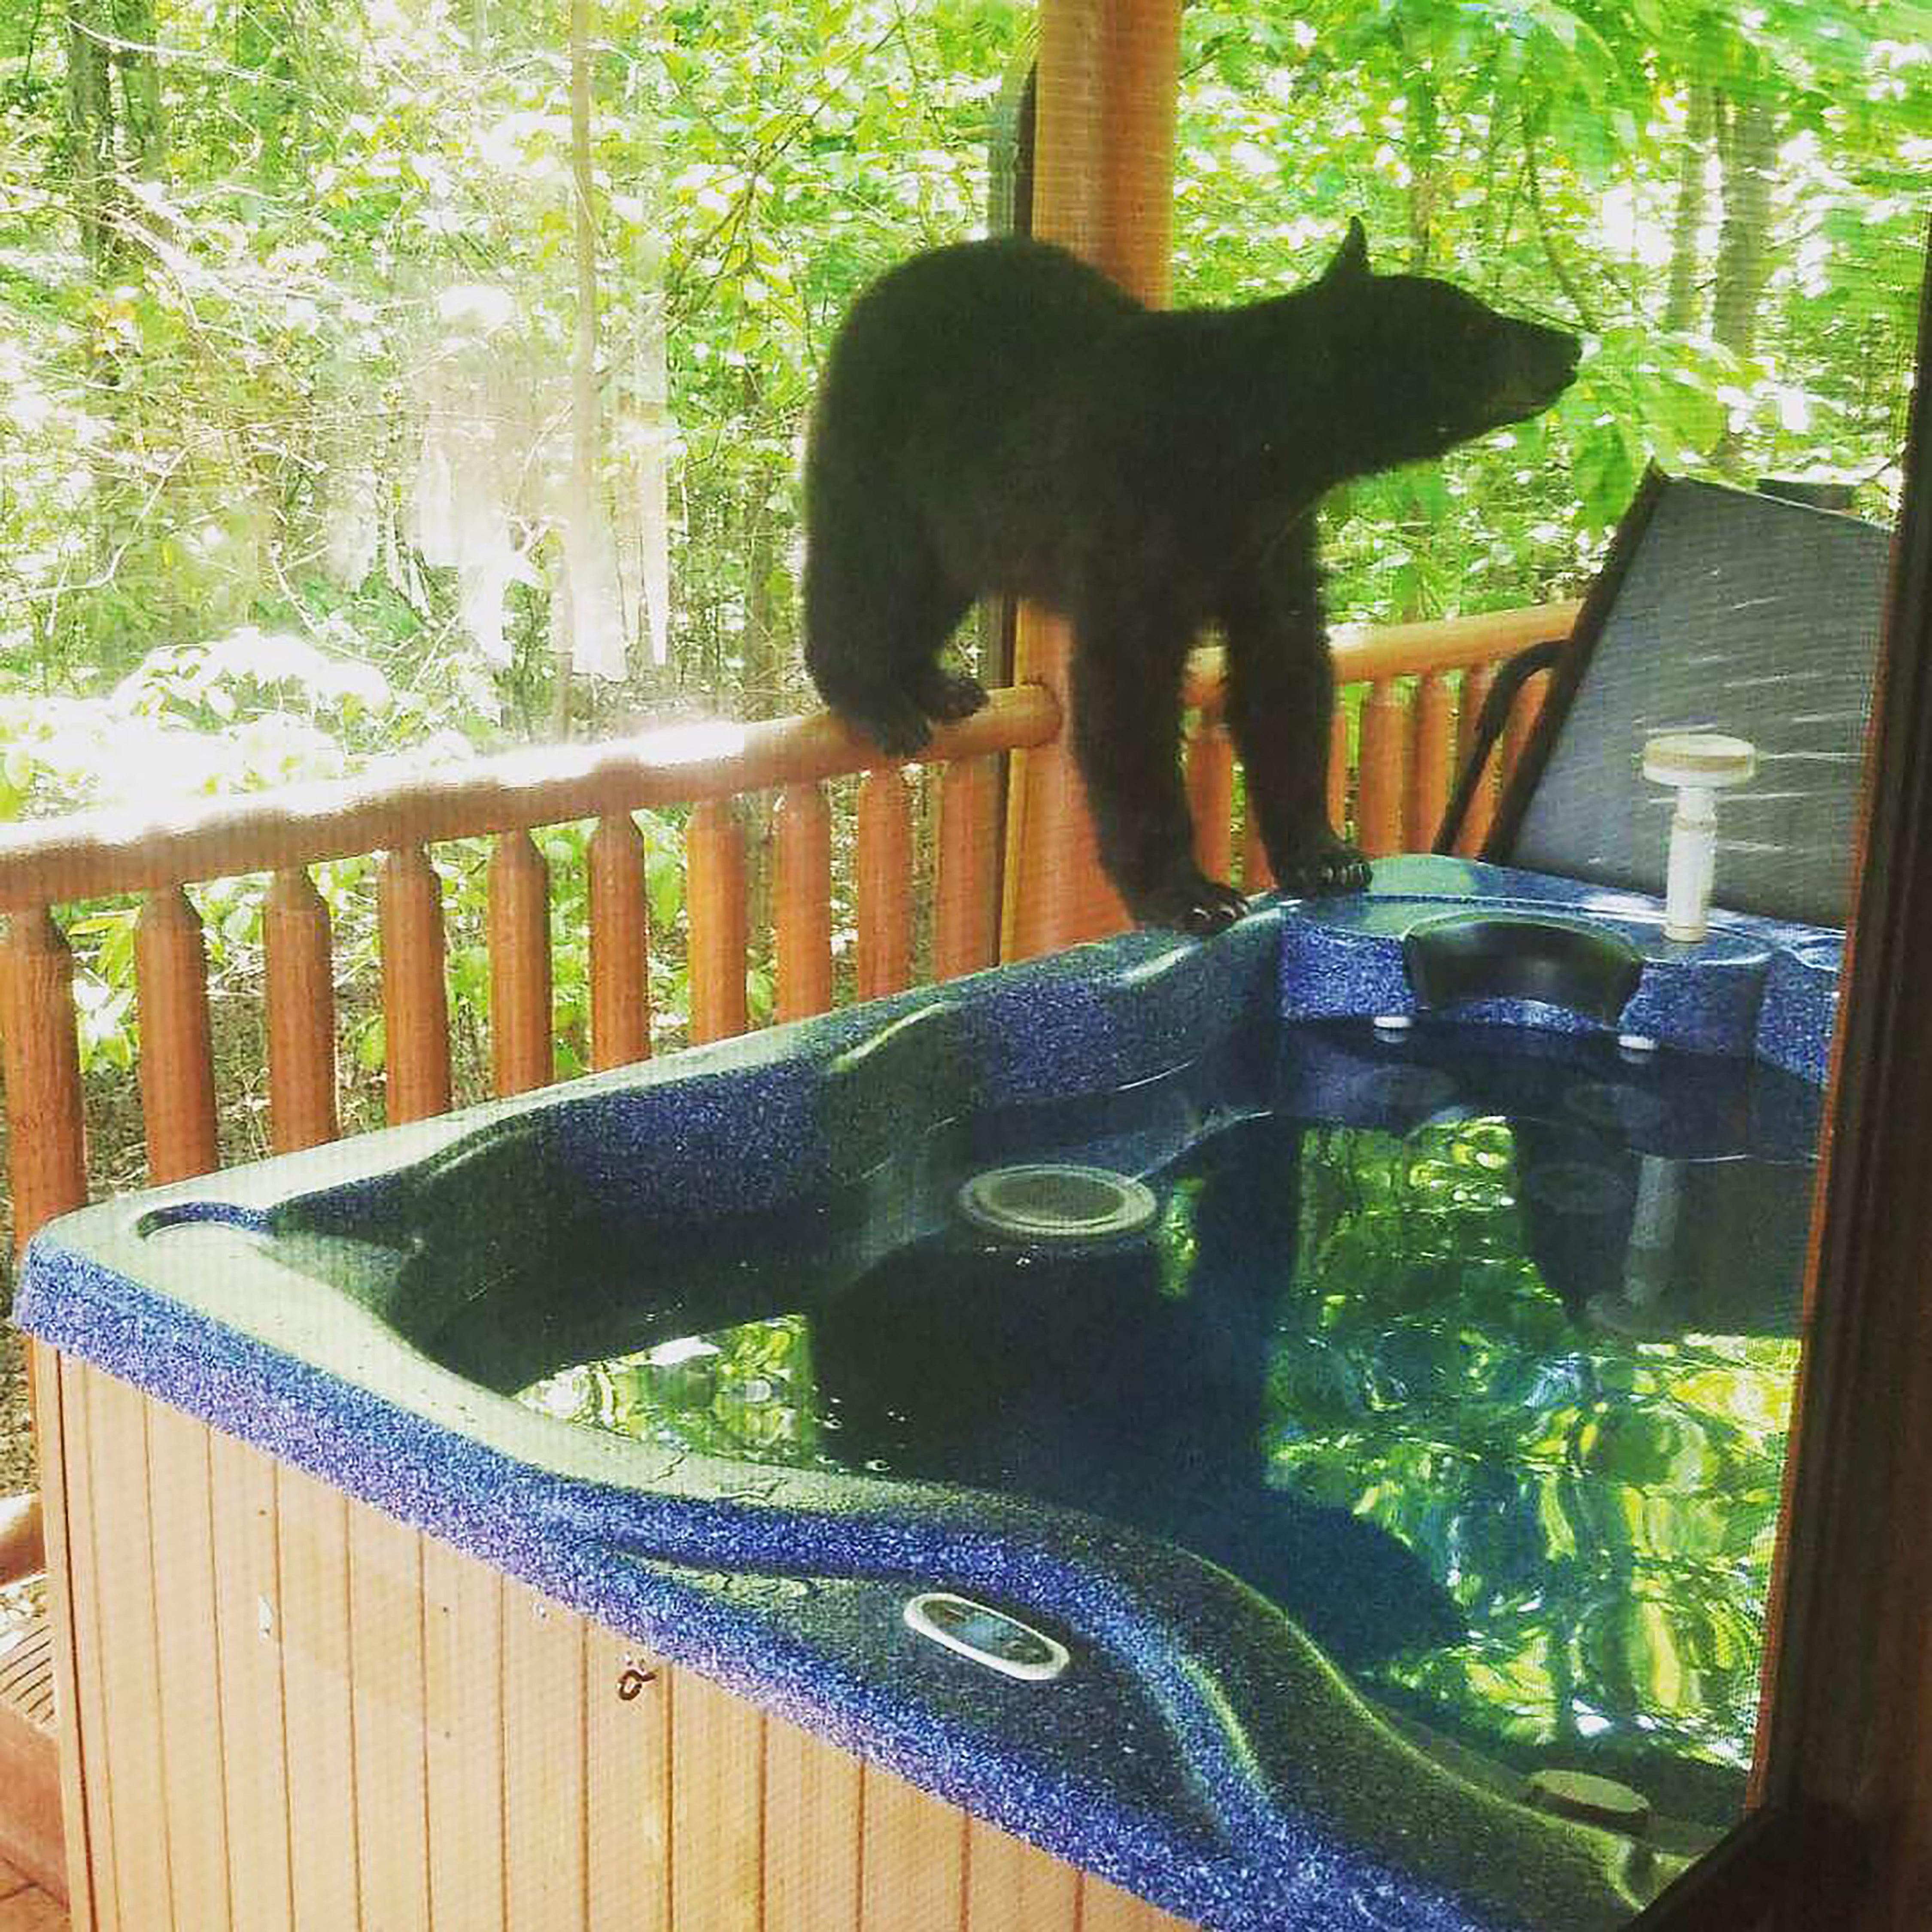 The cute bear cubs enjoyed playing about in the hot tub. Credit: The Mega Agency